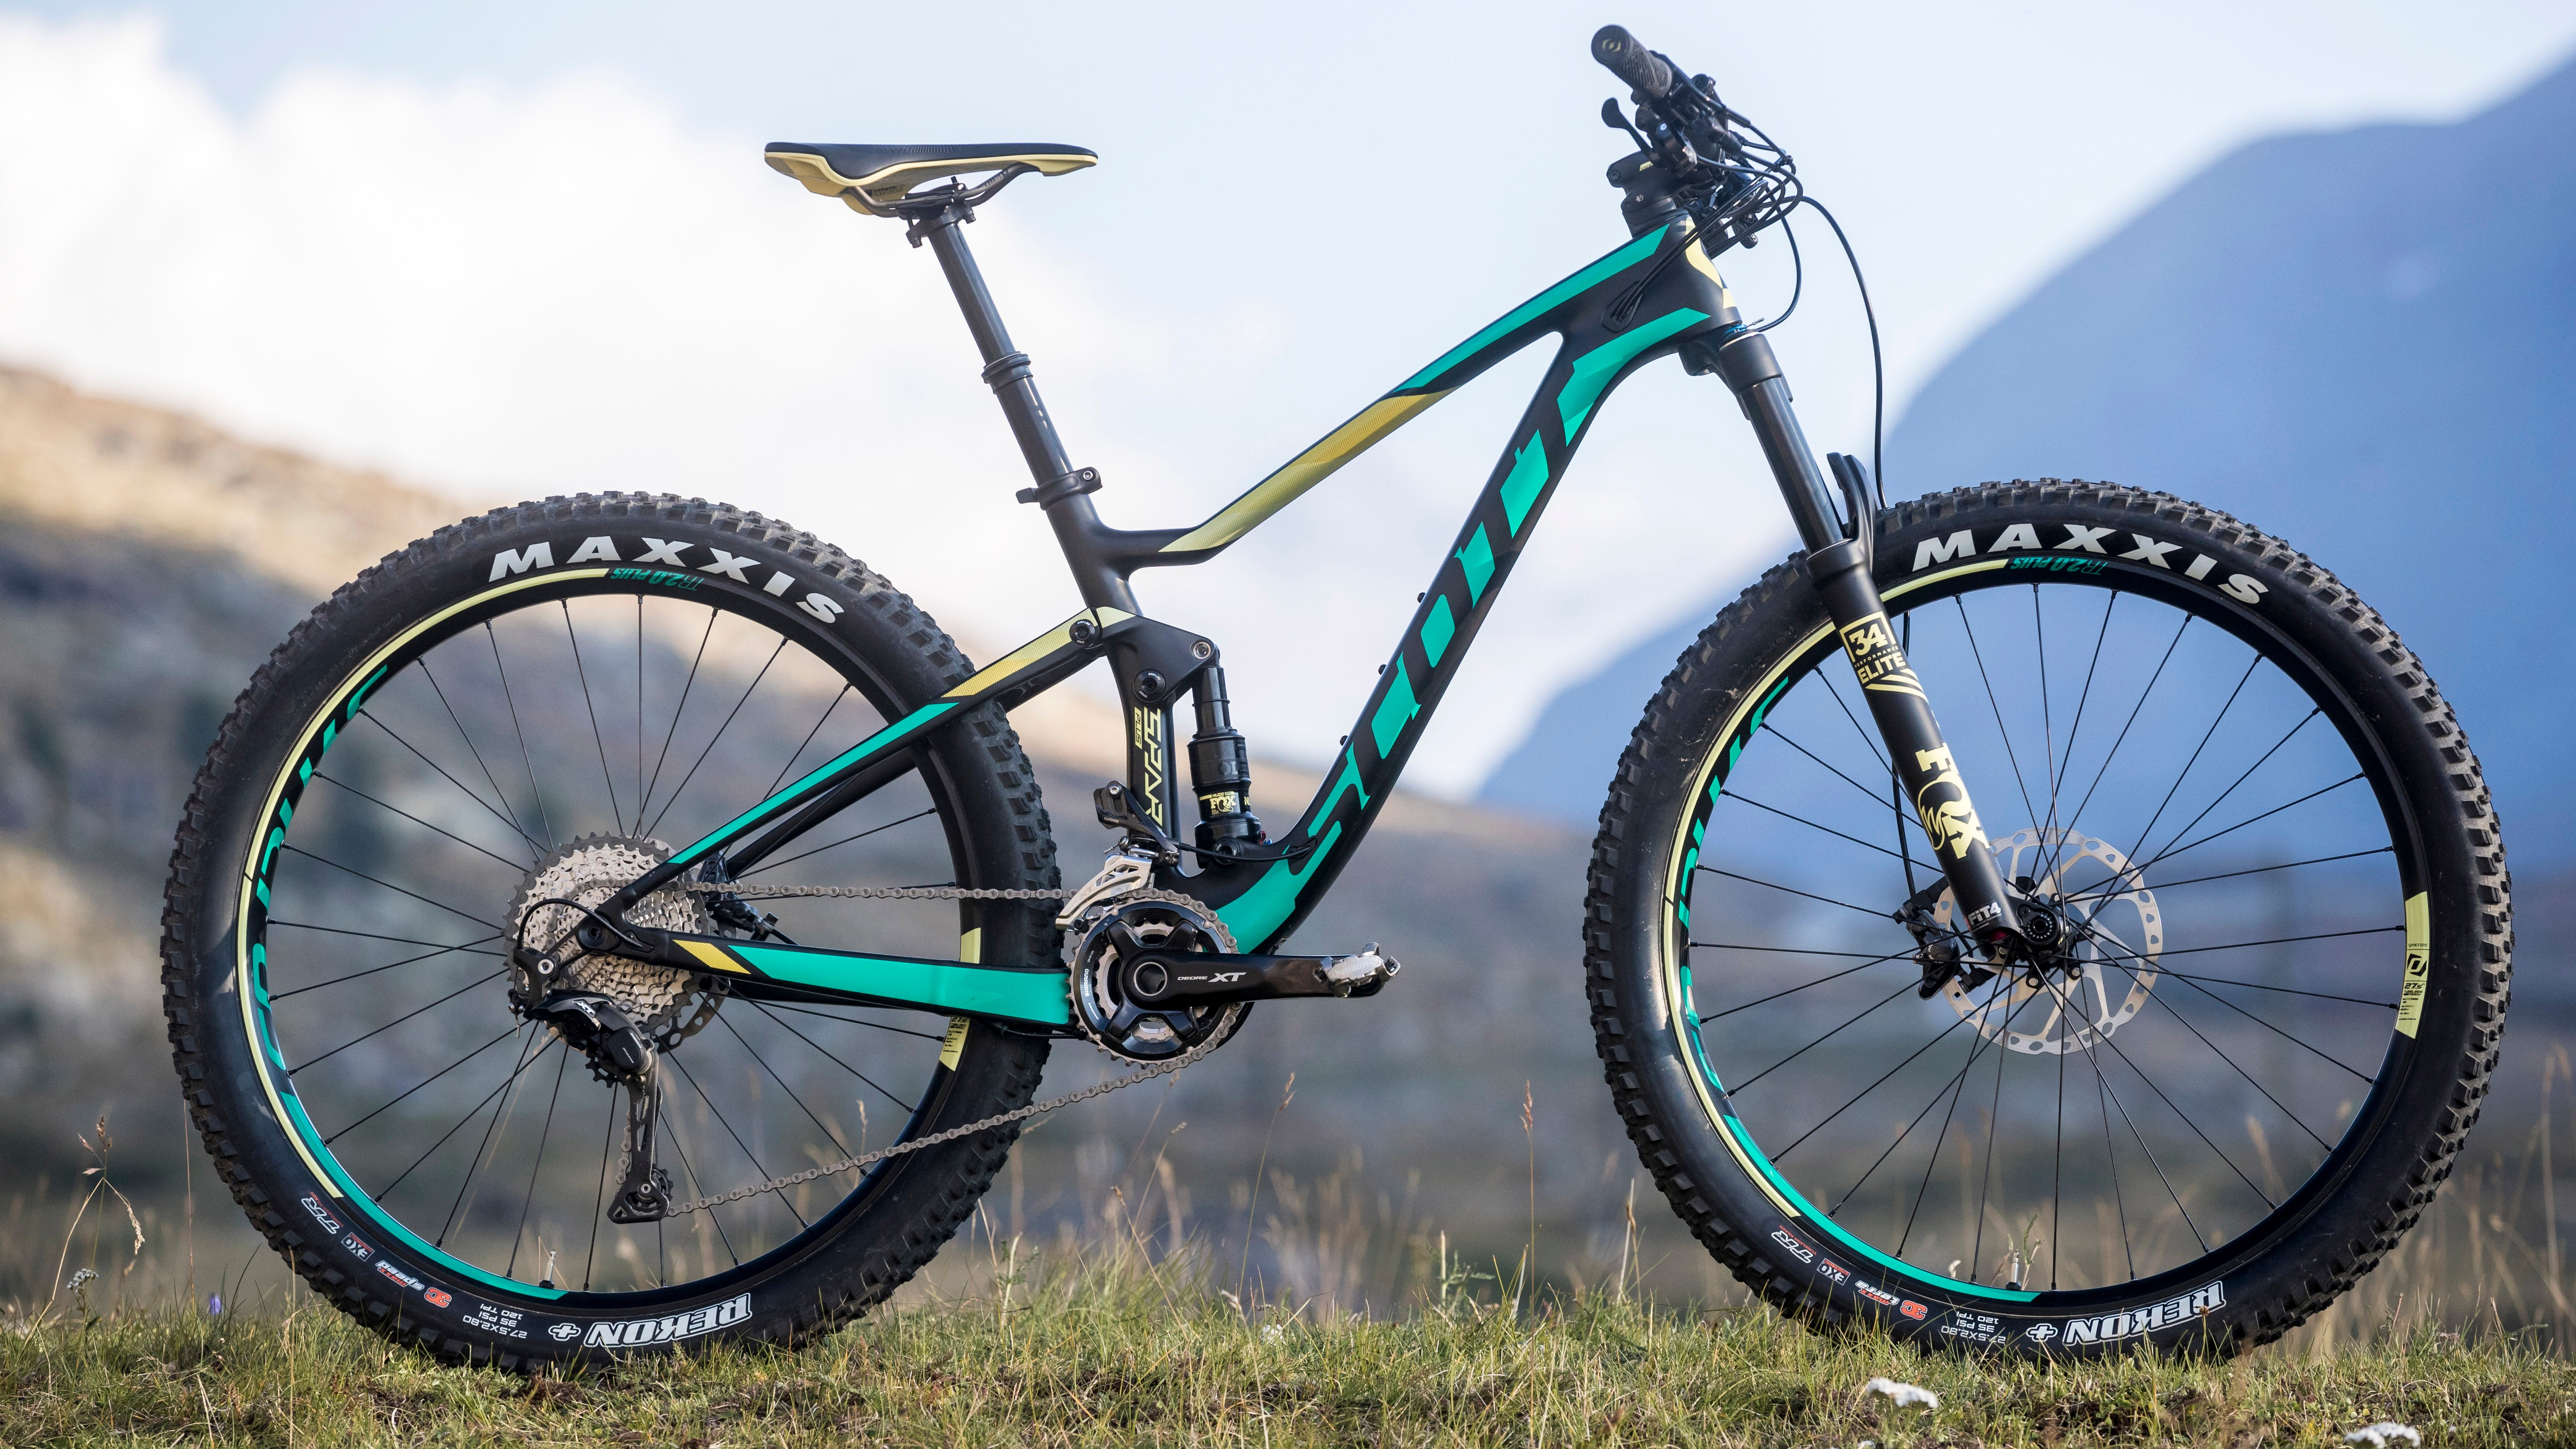 The Scott Contessa Spark 710 Plus with carbon frame and Shimano XT groupset